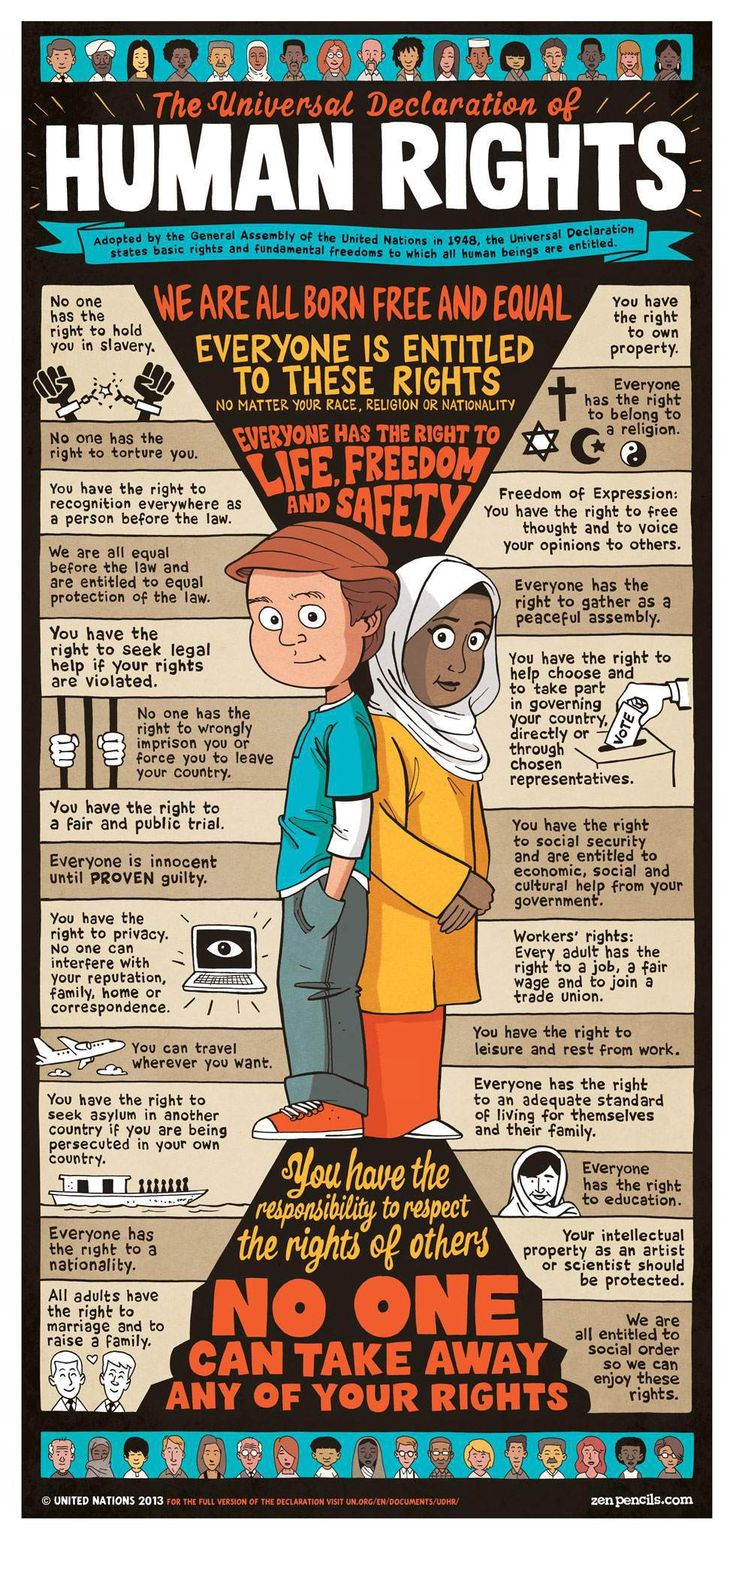 I really enjoy this poster as it encourages students to not discriminate people, showing that we ultimately hold the responsibility to respect the rights of others. I would use this poster as an entry point for students to look at current issues, such as #BlackLivesMatter, and see the unethical and immoral acts people partake in when in the possession of power.